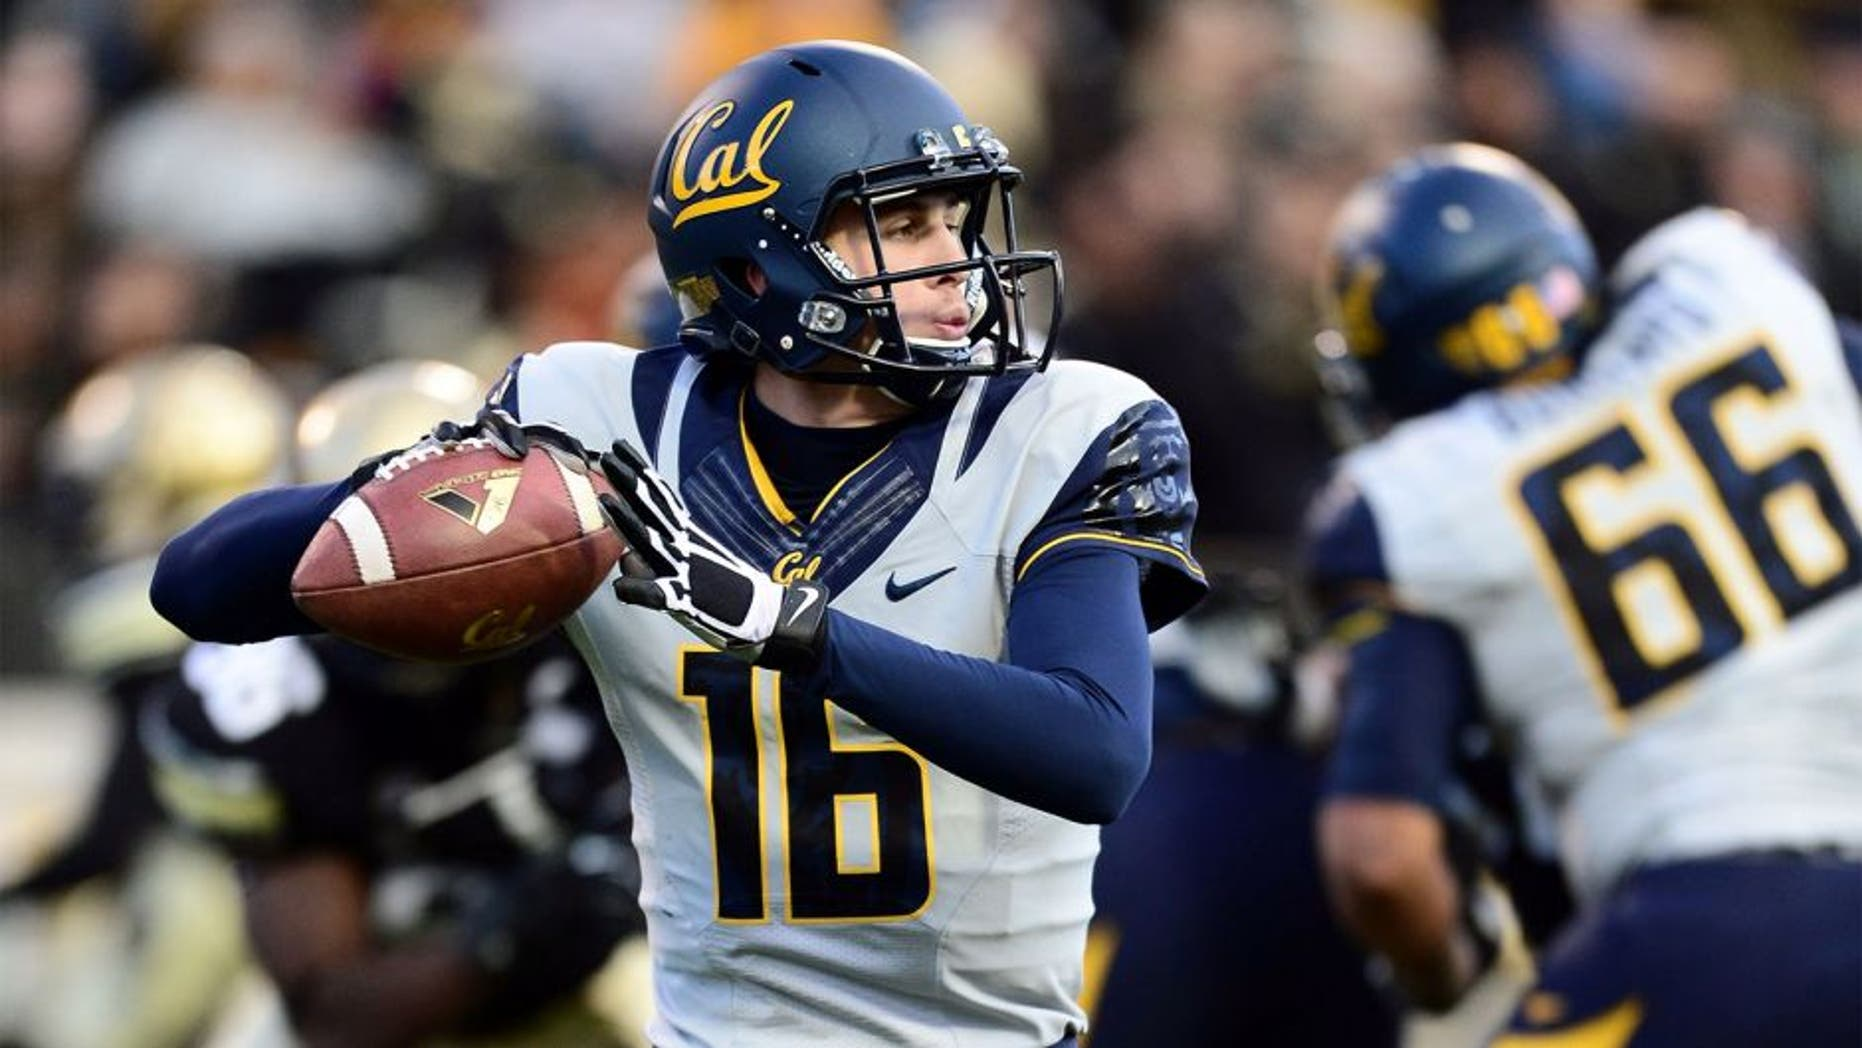 Nov 16, 2013; Boulder, CO, USA; California Golden Bears quarterback Jared Goff (16) prepares to pass in the first quarter against the Colorado Buffaloes at Folsom Field. Mandatory Credit: Ron Chenoy-USA TODAY Sports